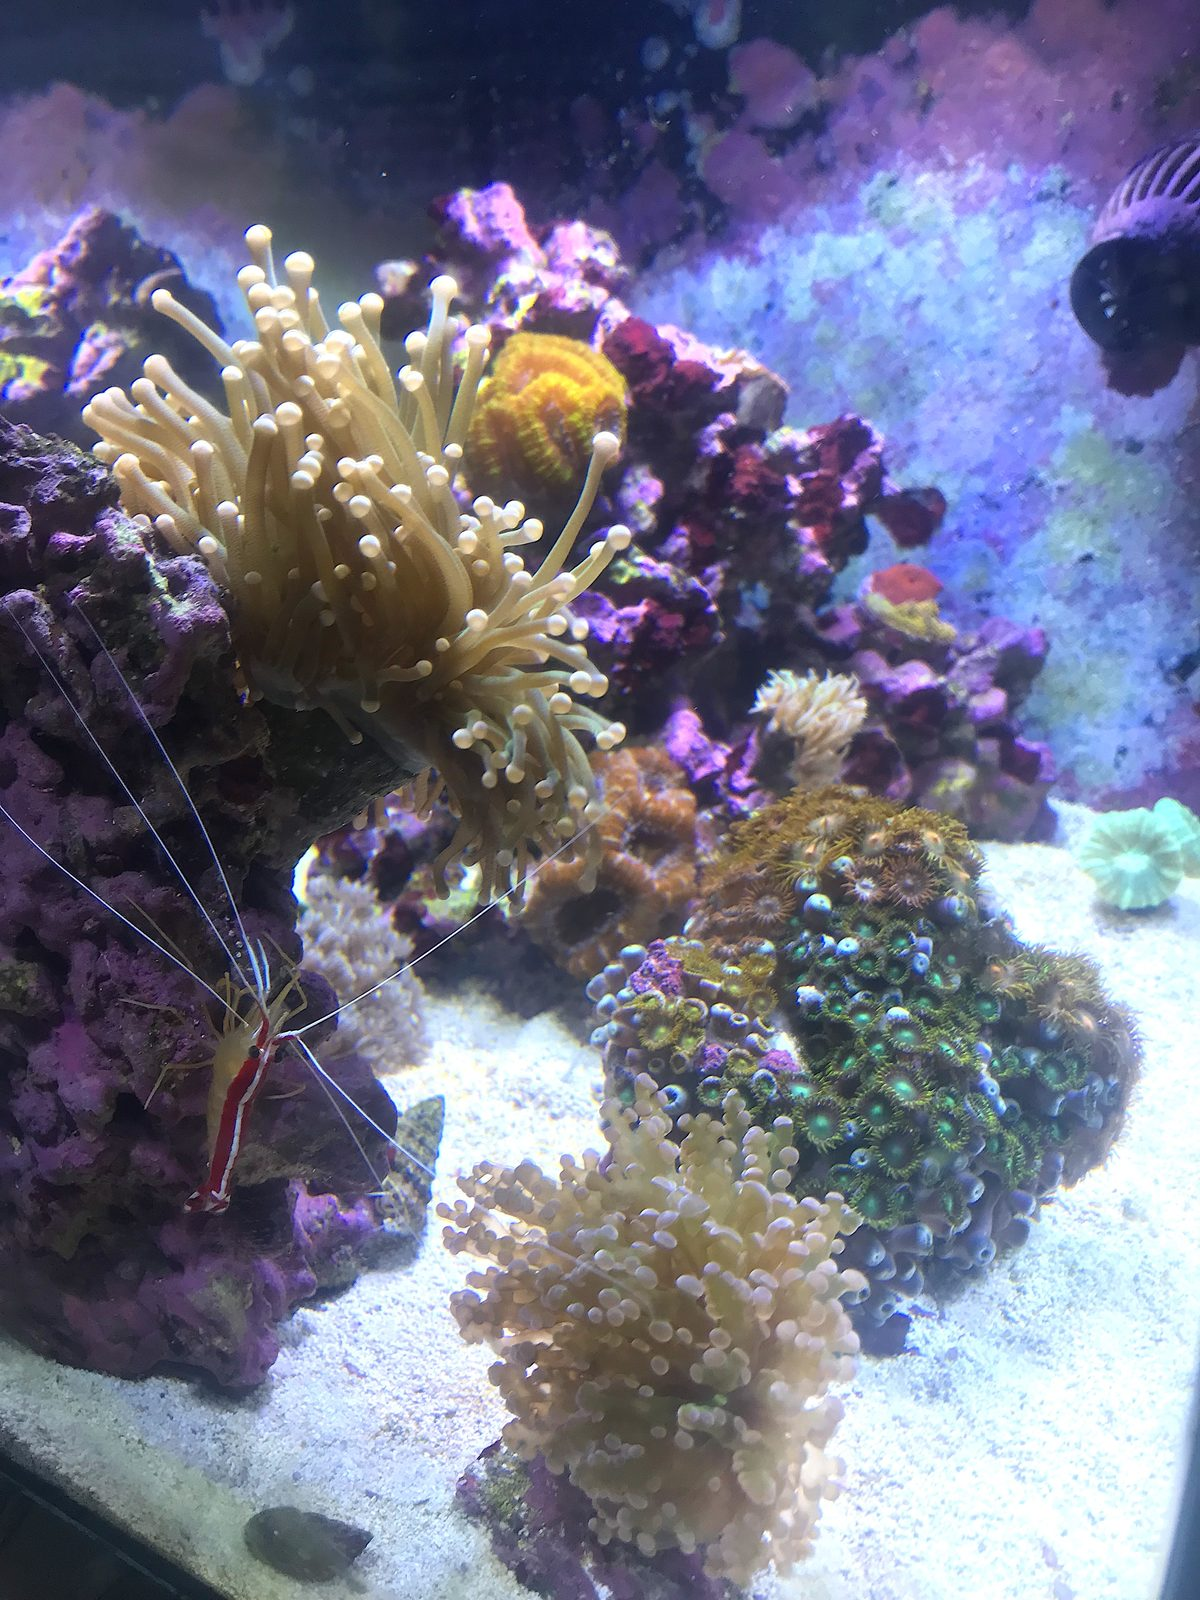 Another Fluval Evo 13 5 reef project - SPS growth pics under